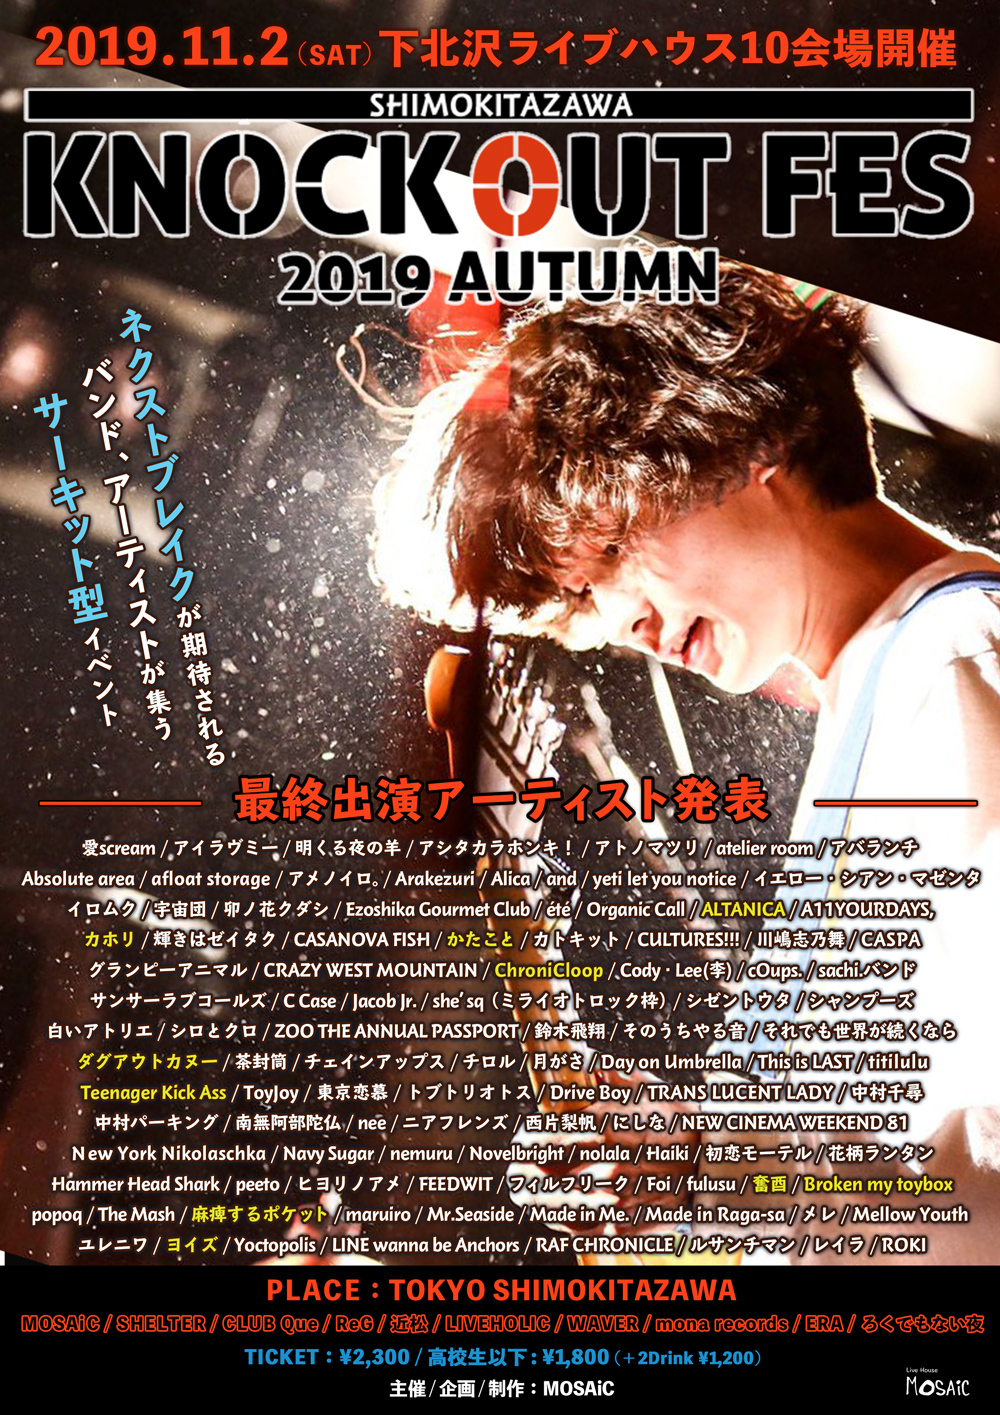 『KNOCKOUT FES 2019 autumn』